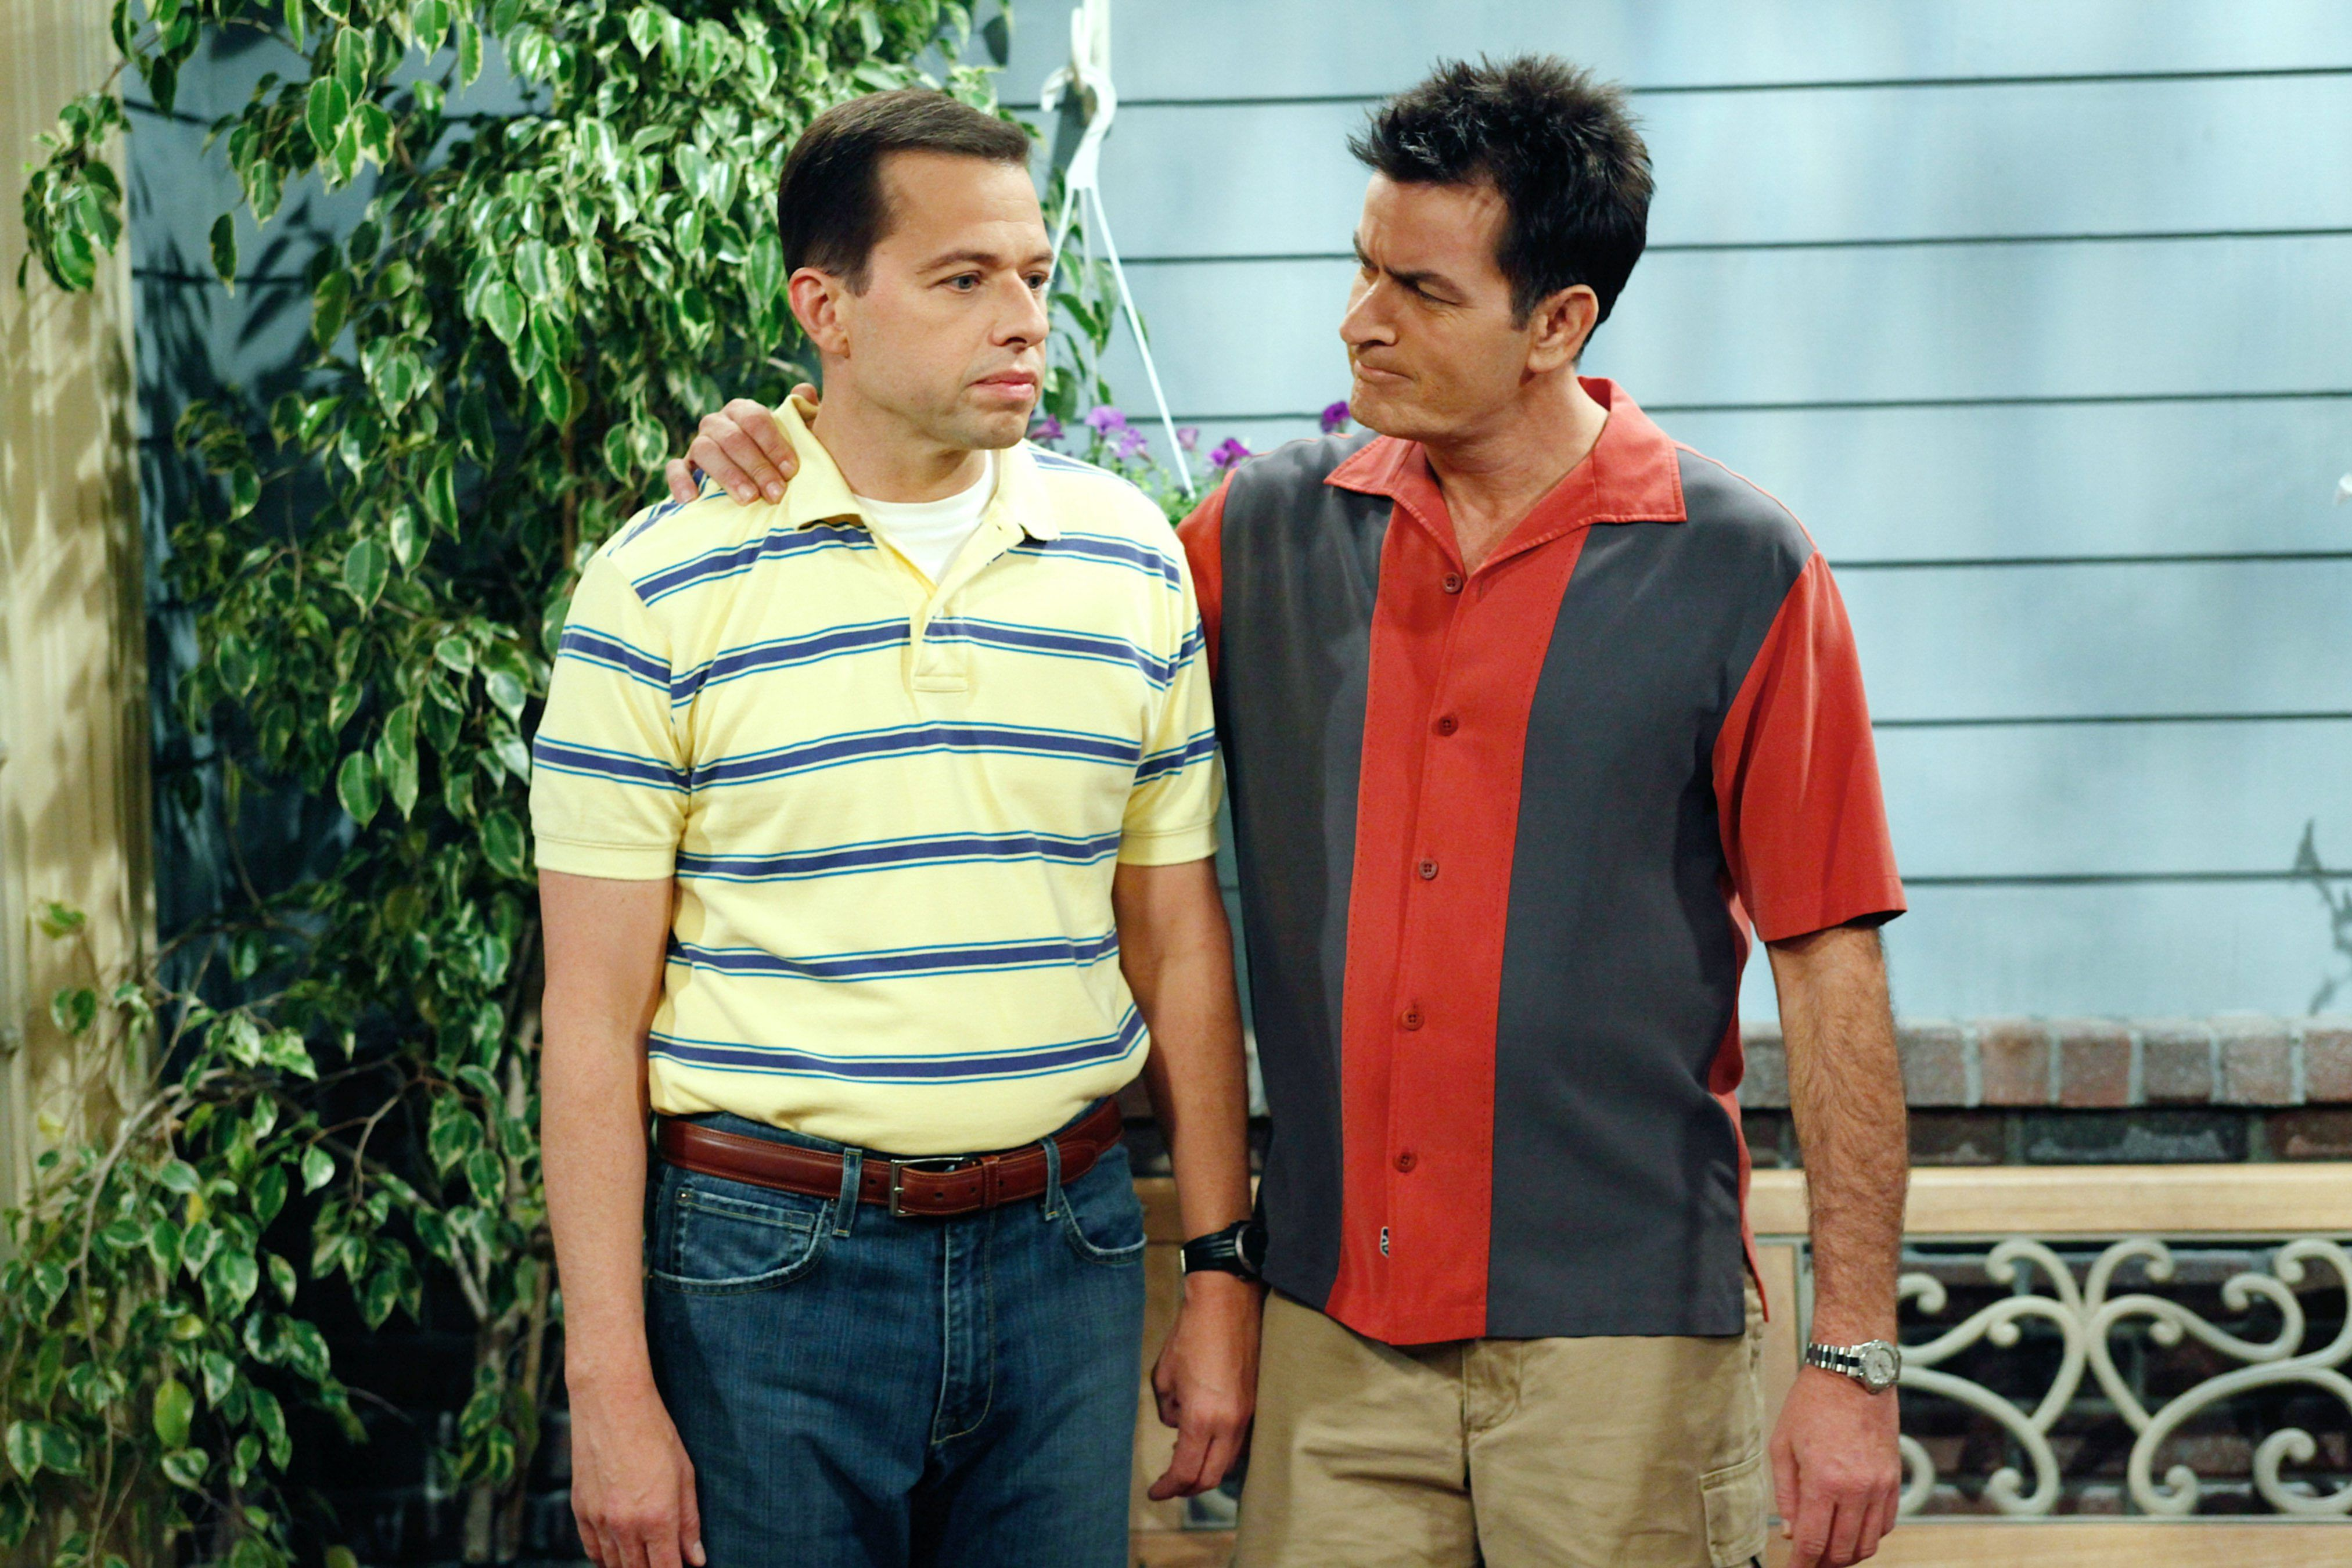 Jon Cryer Reflects On The Tumultuous Time Of Working With Charlie Sheen On 'Two And A Half Men' - Fame10